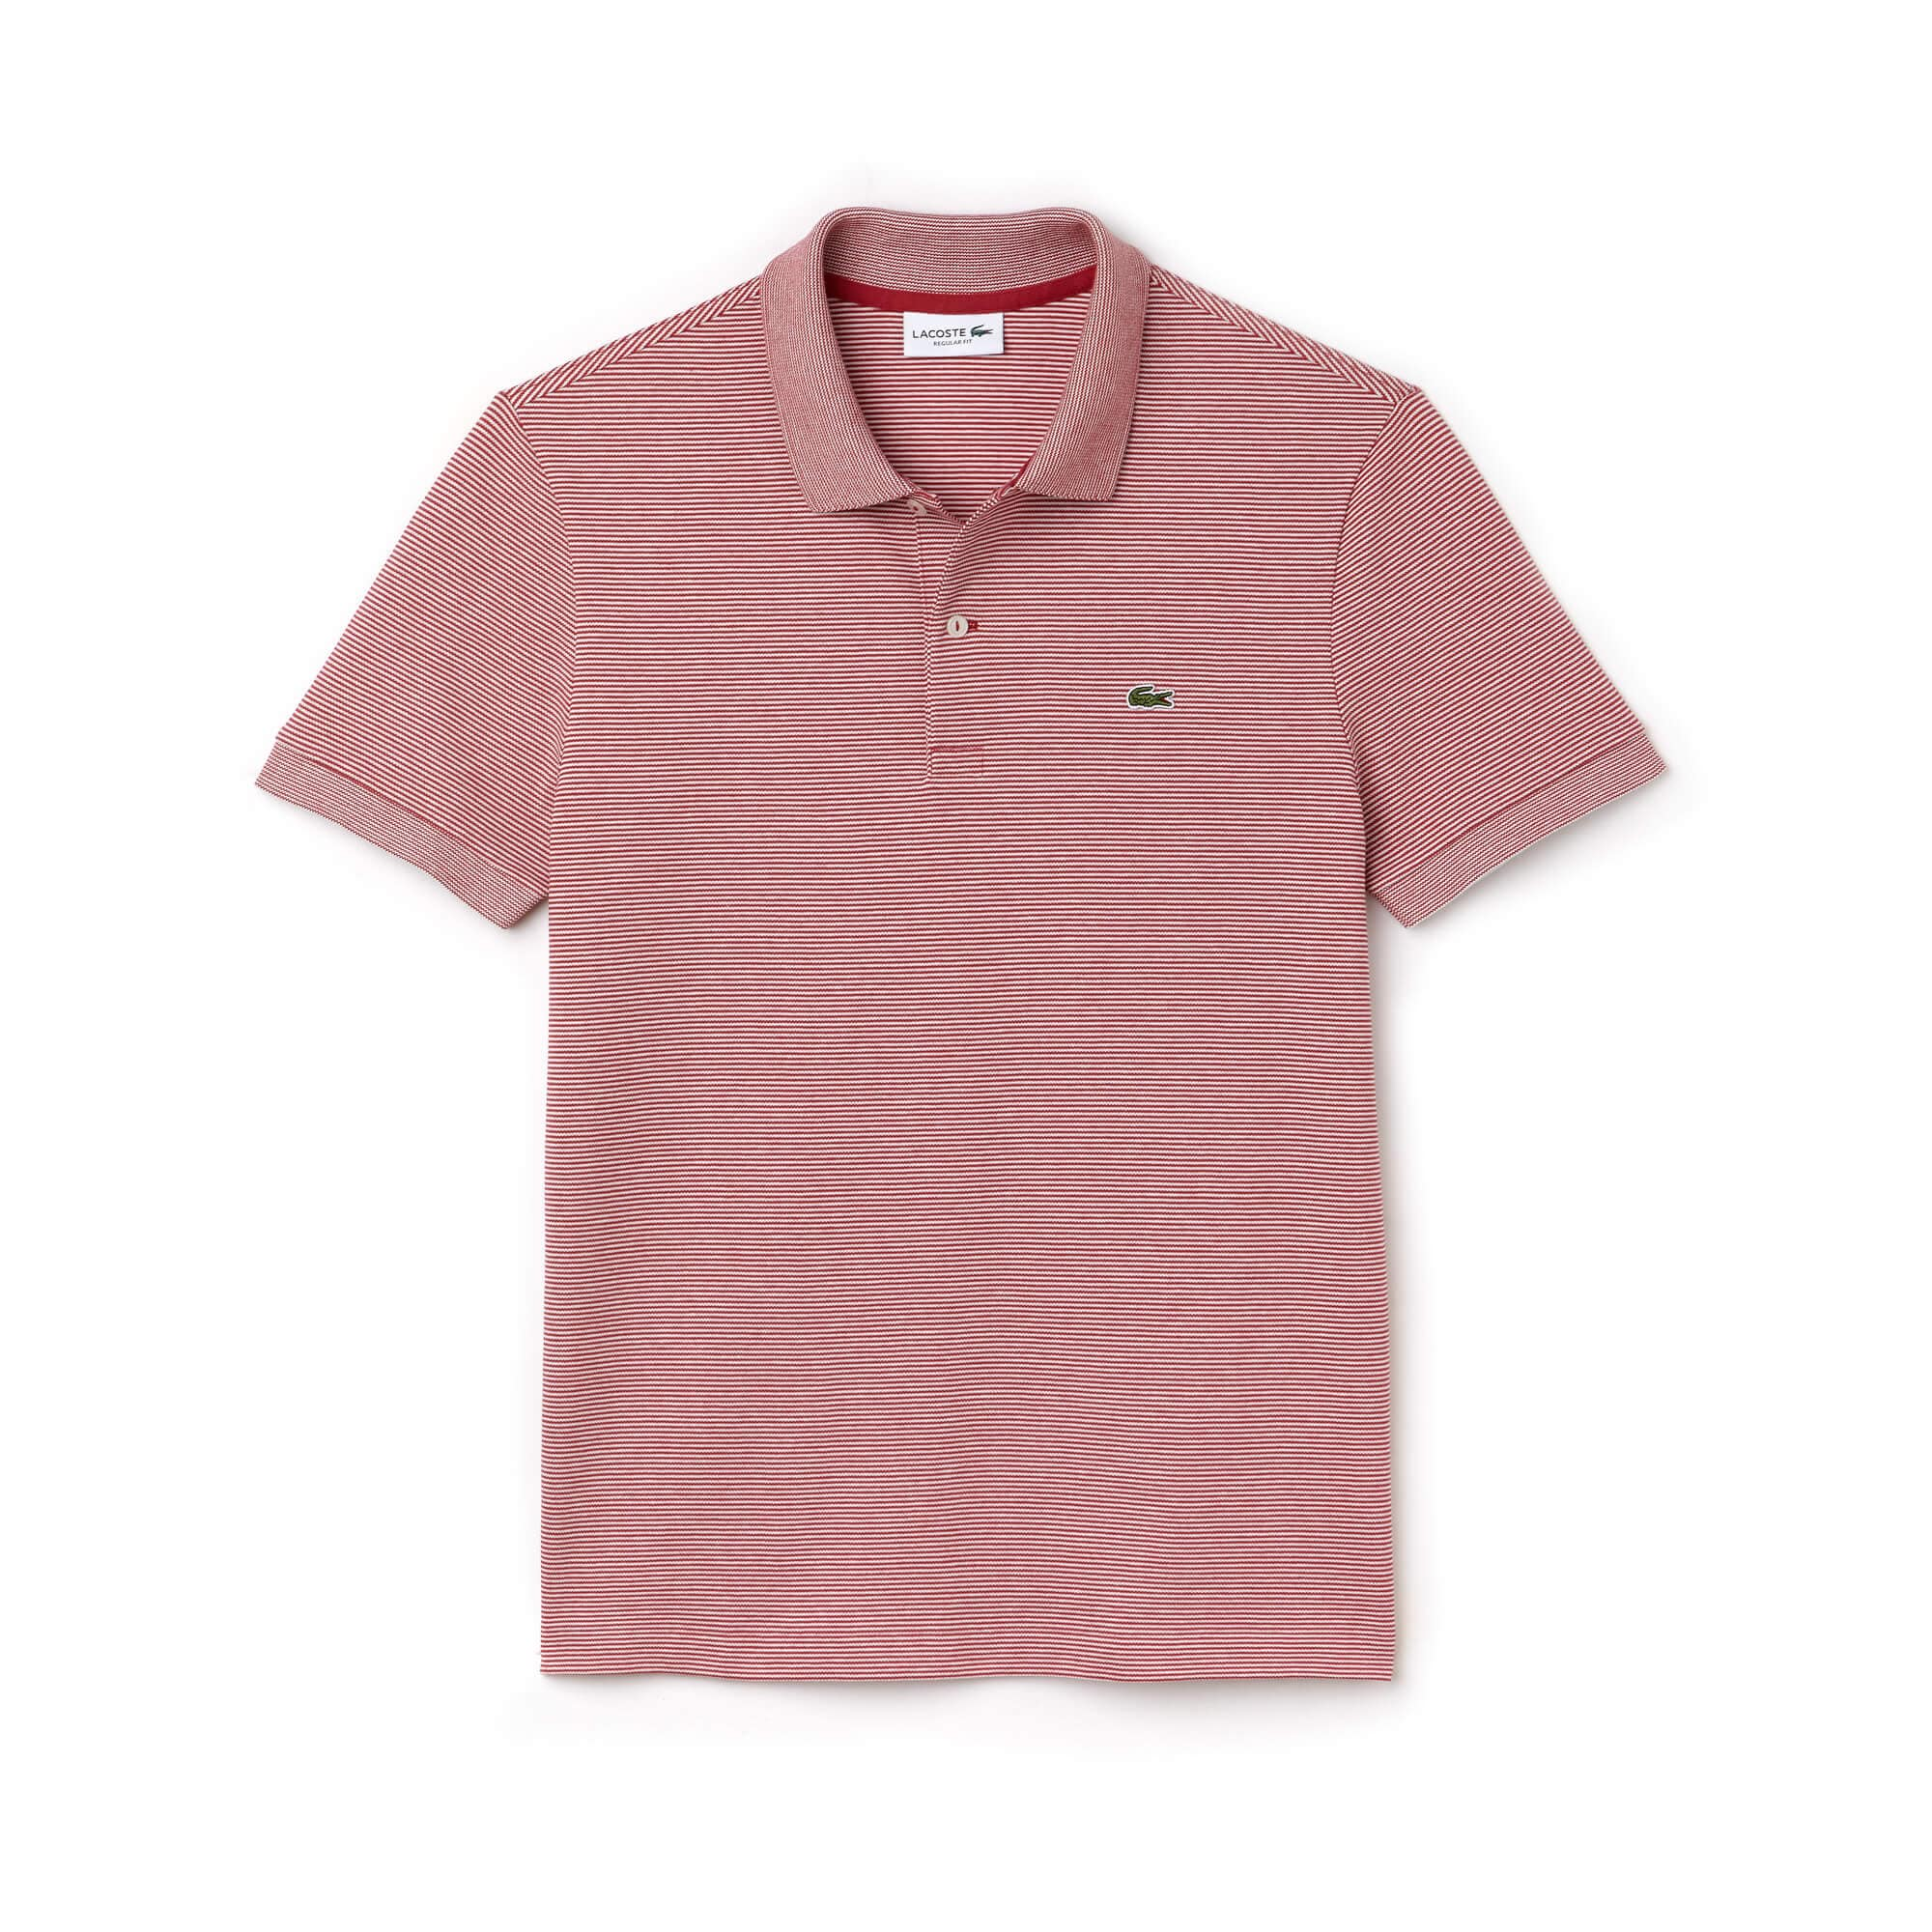 Polo regular fit Lacoste de mini piqué de rayas